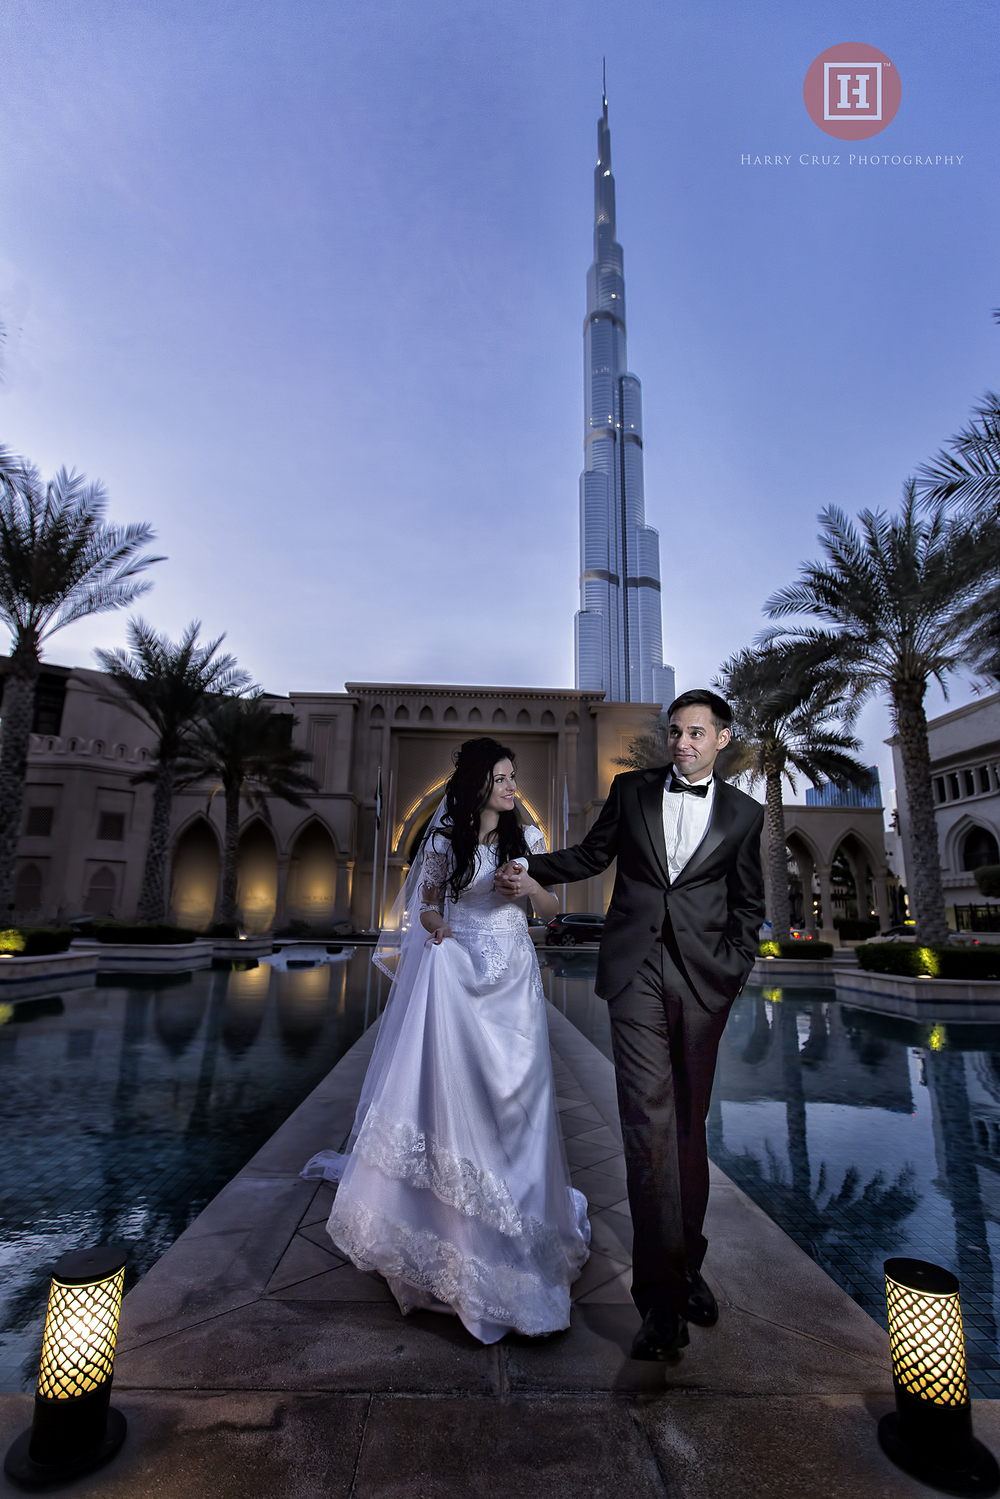 Copyright {HC} Harry Cruz Photography